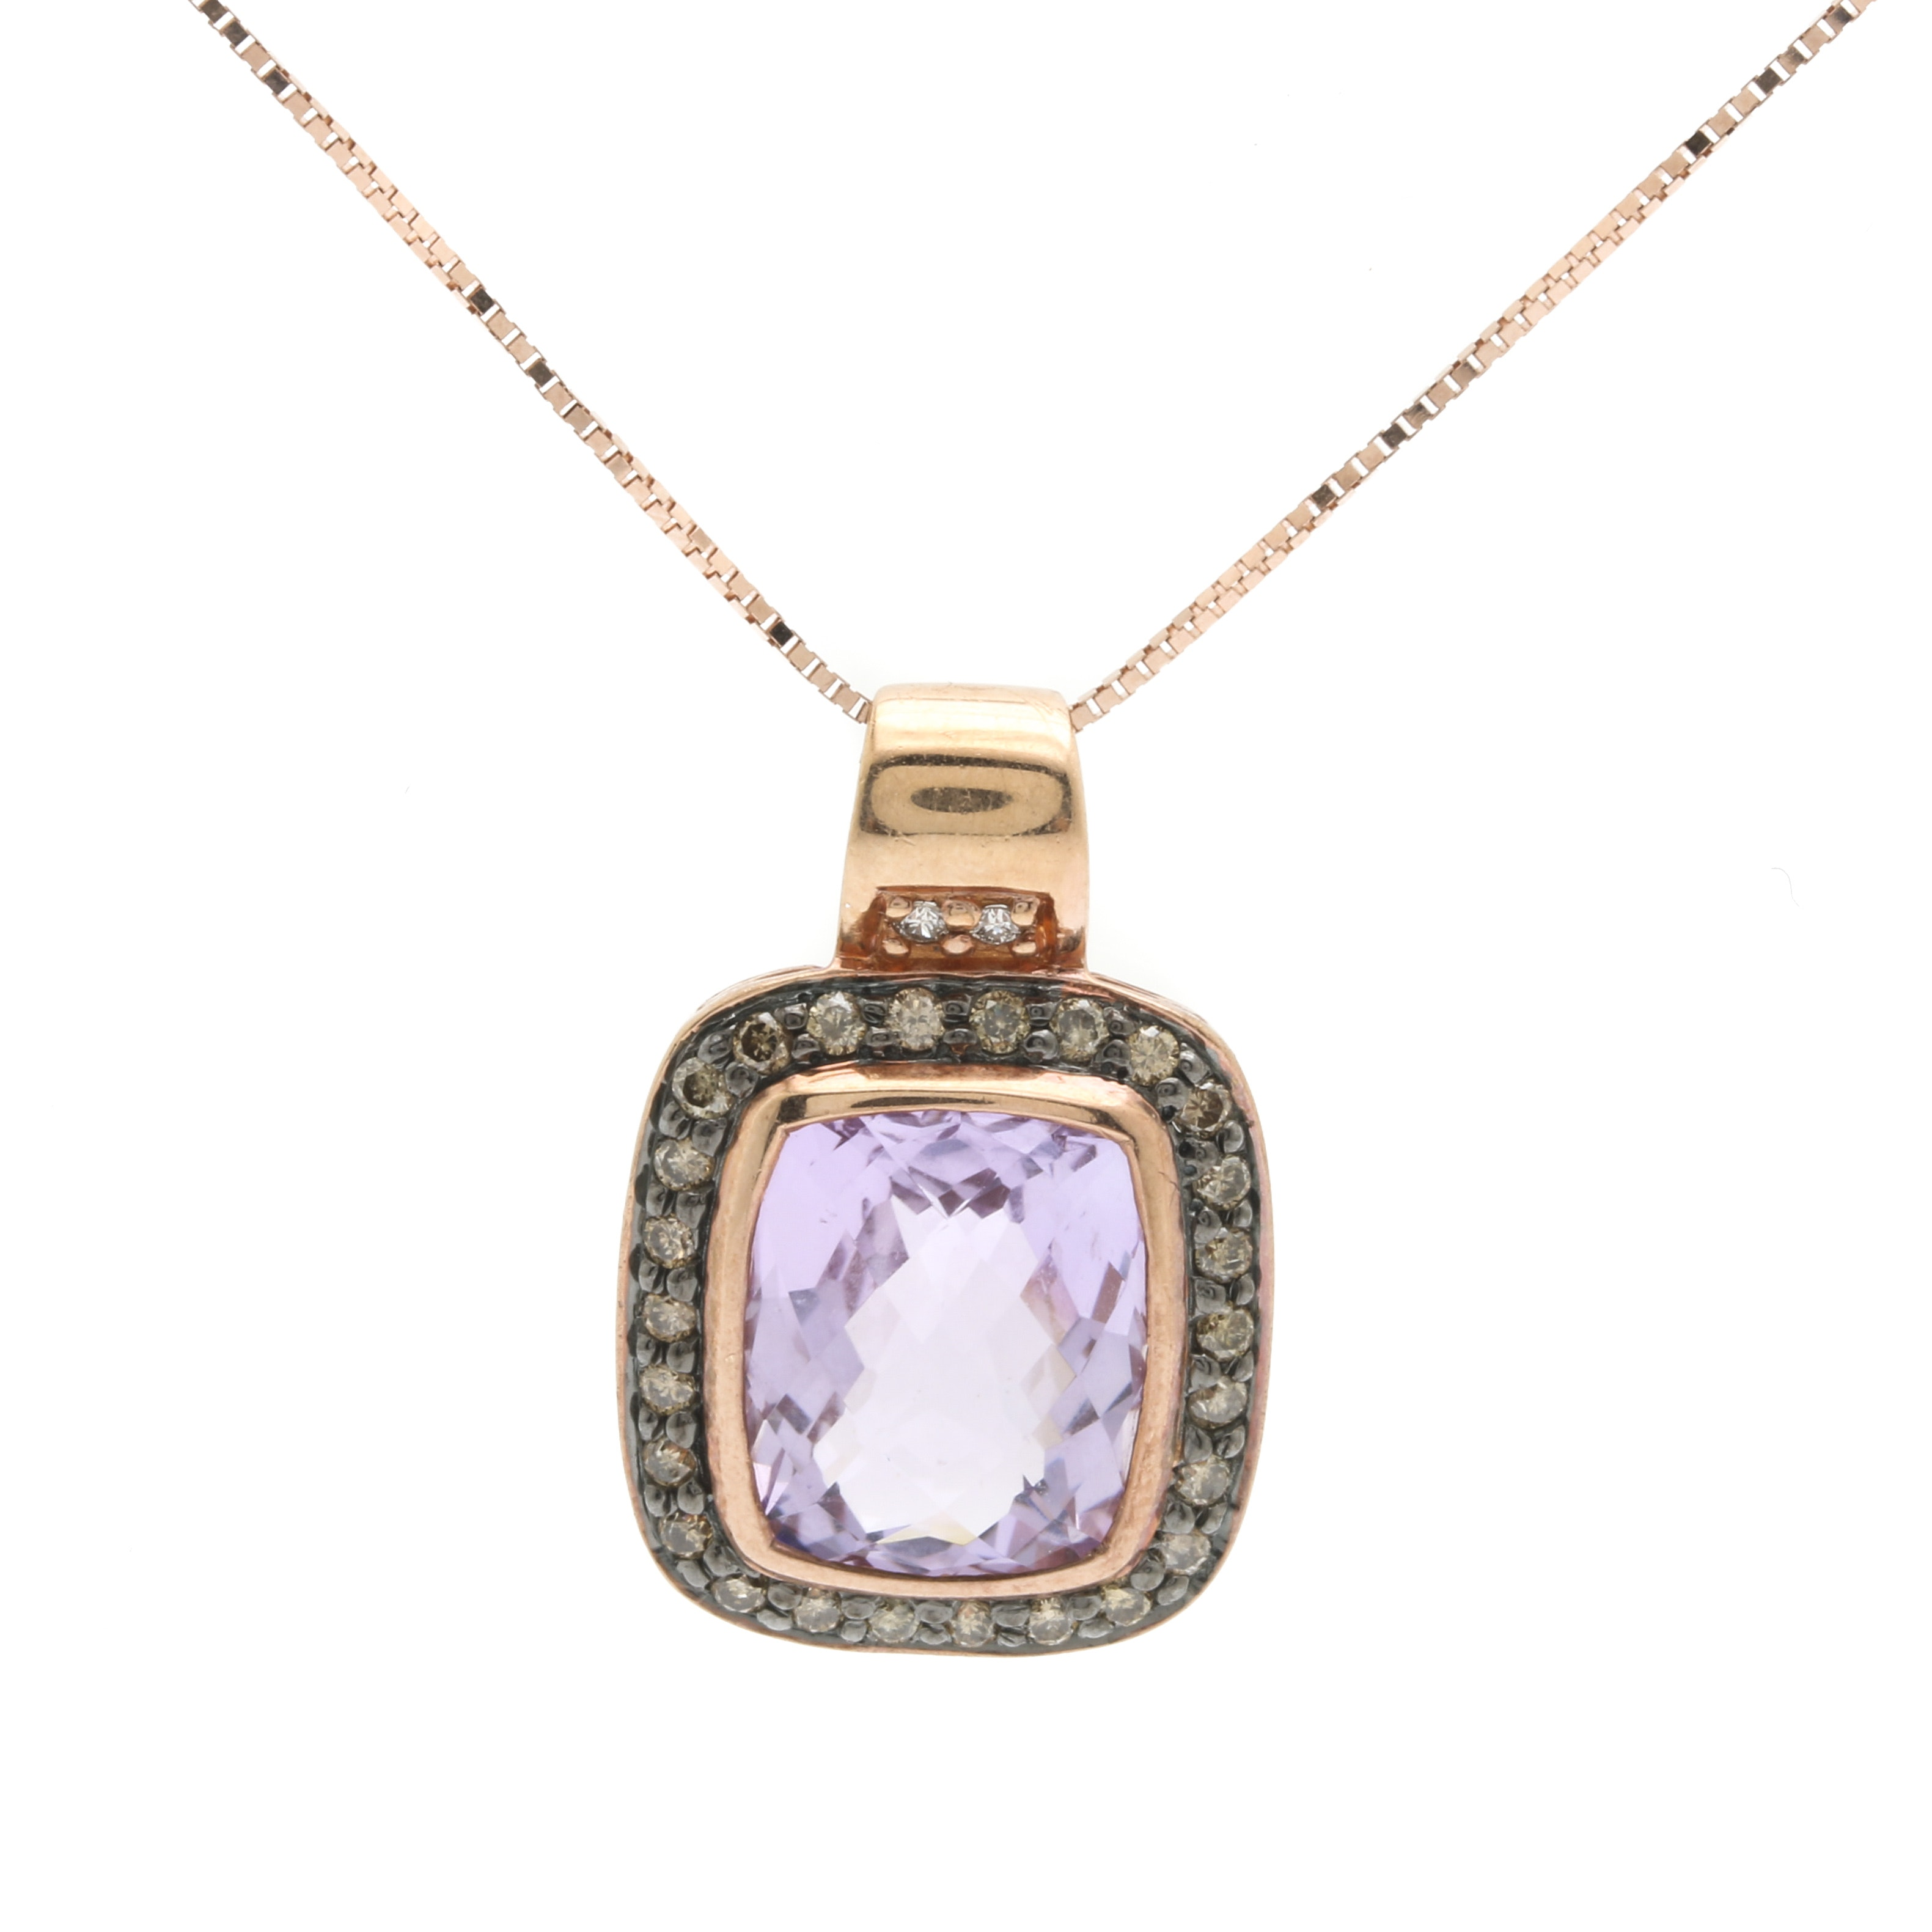 LeVian 14K Rose Gold, Amethyst, and Diamond Pendant Necklace